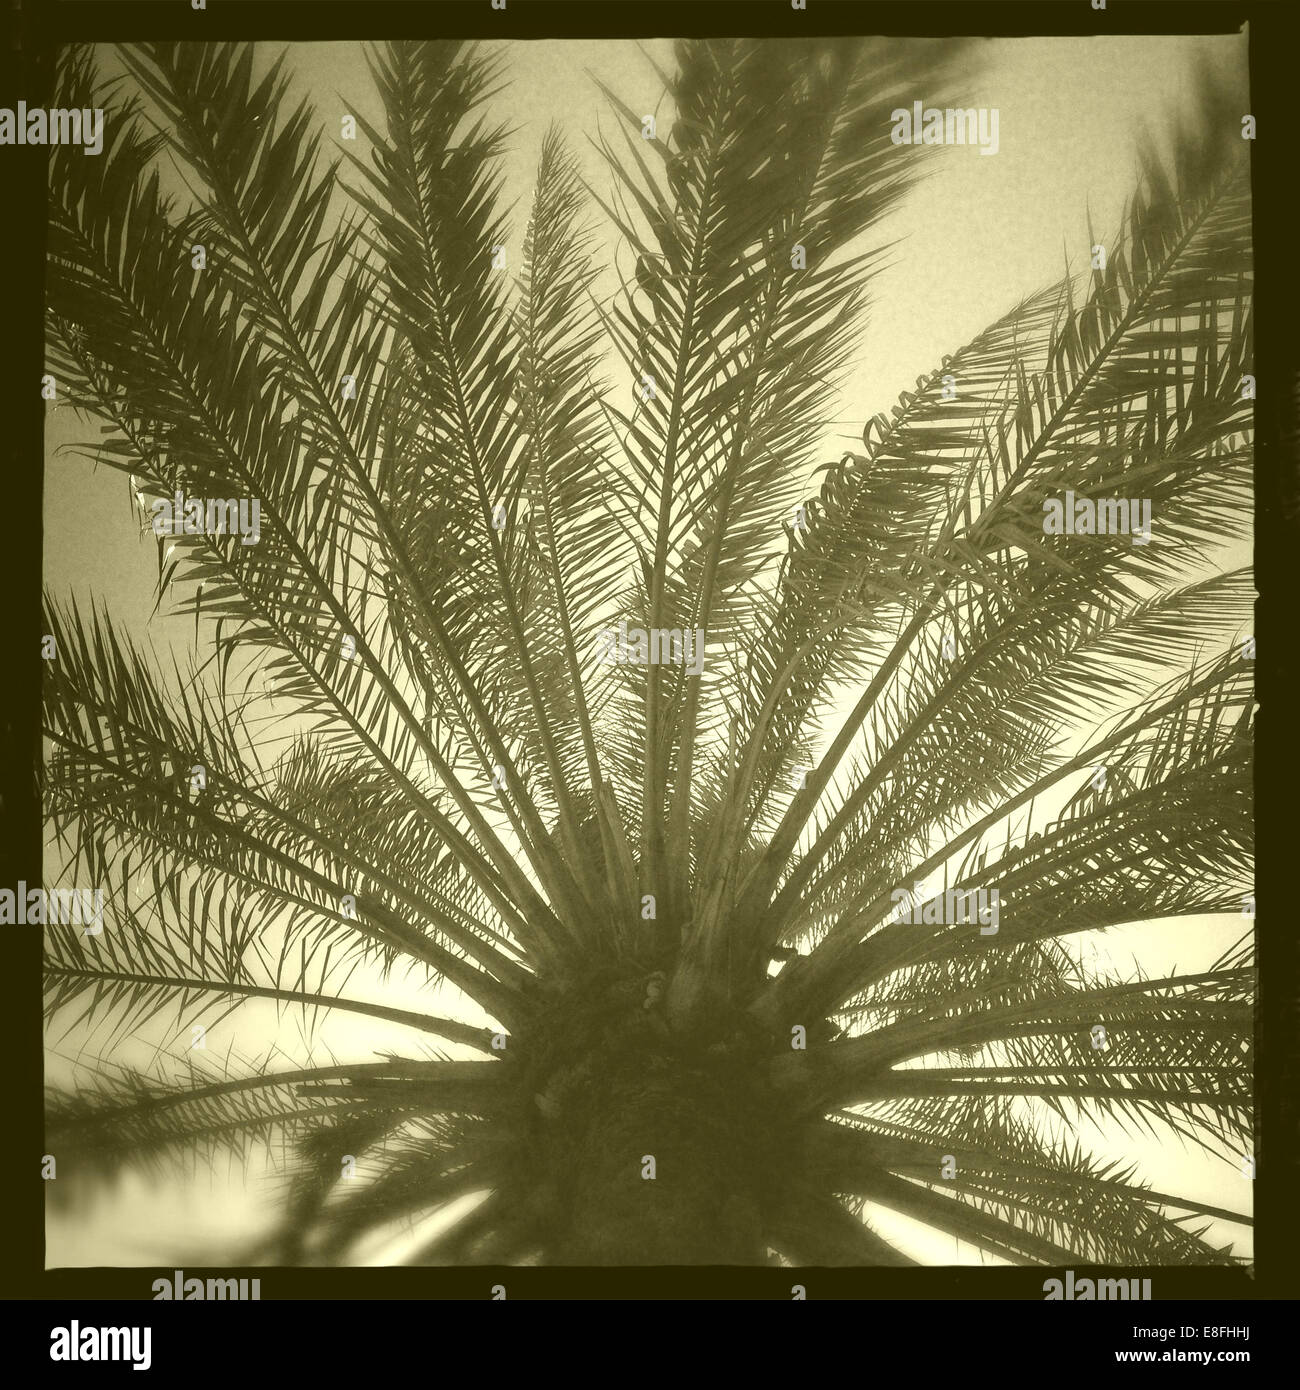 Oman, Muscat, Palm tree from below Stock Photo